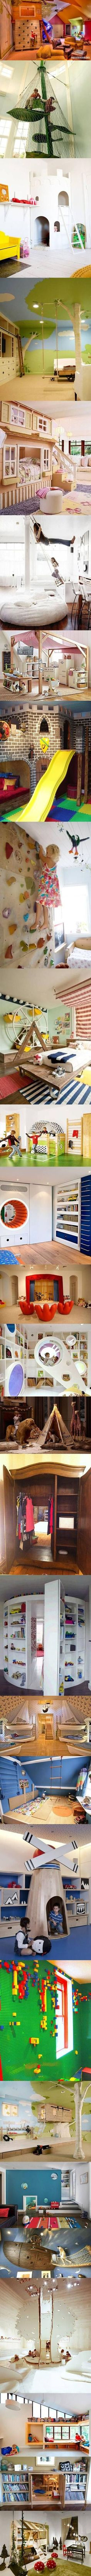 OMG-ideas for kids rooms